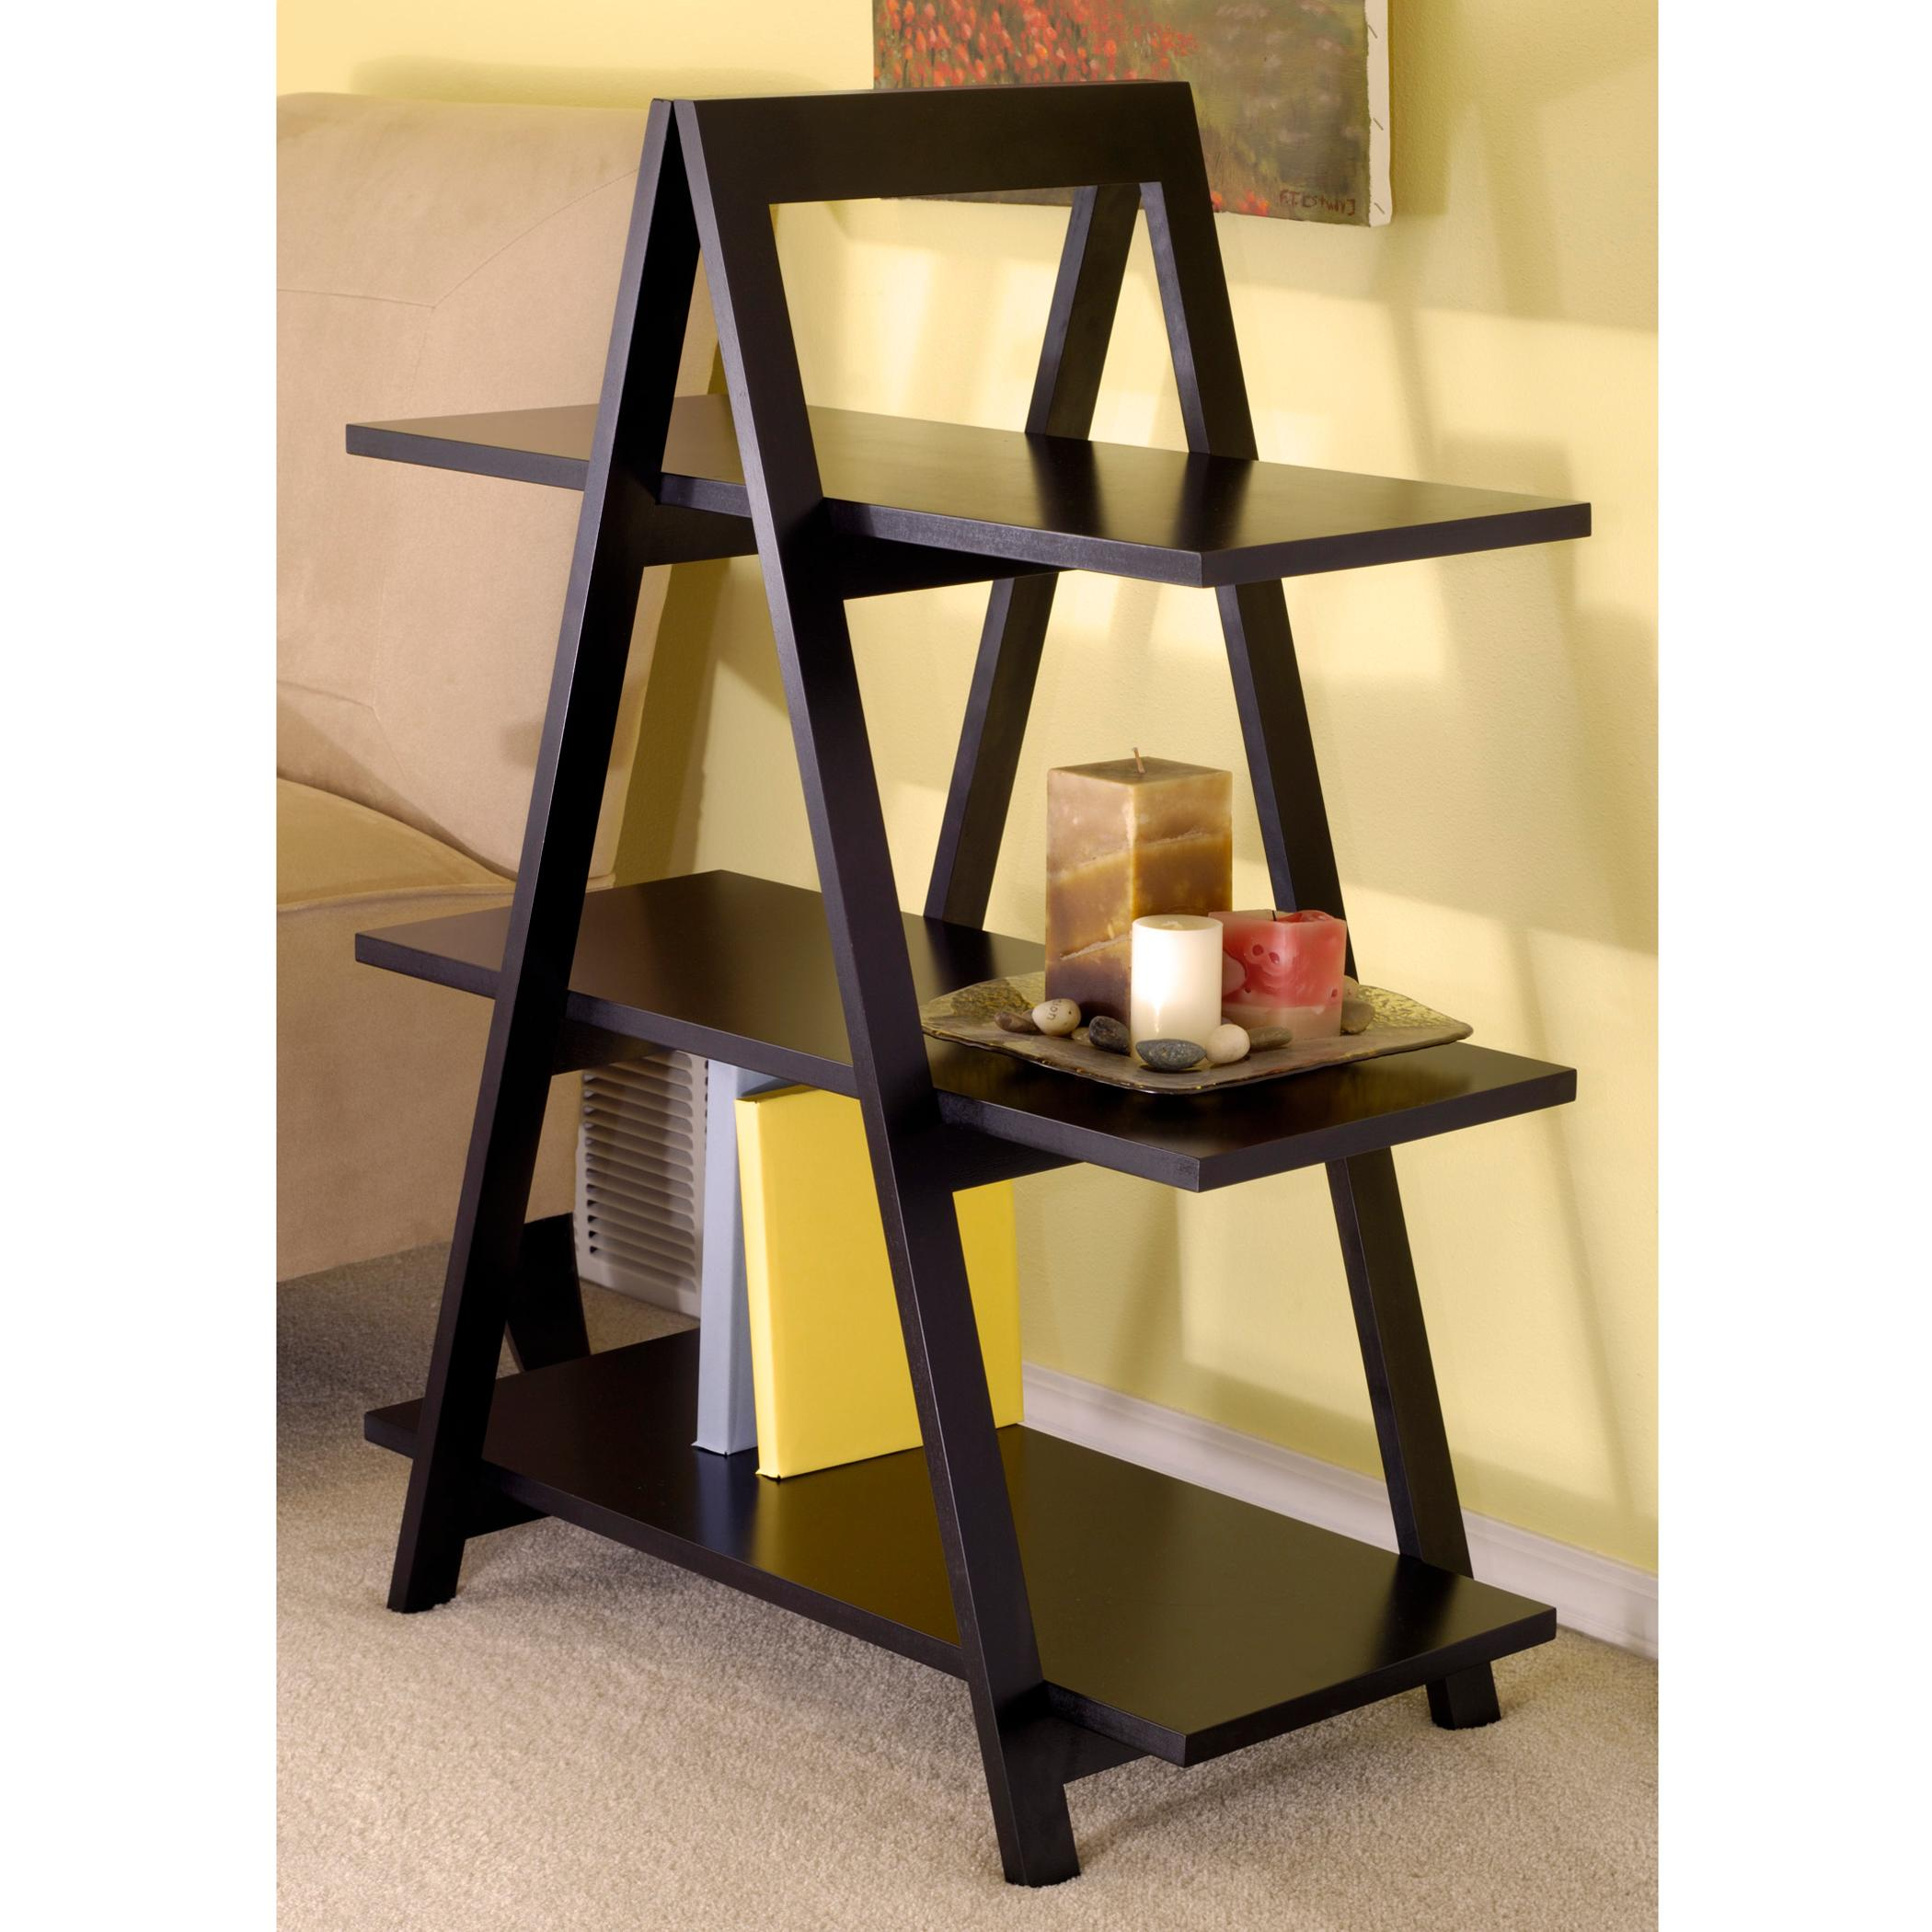 Marvelous photograph of aaron a frame shelf in black a unique shelving a frame shelf features  with #AD8A1E color and 2100x2100 pixels